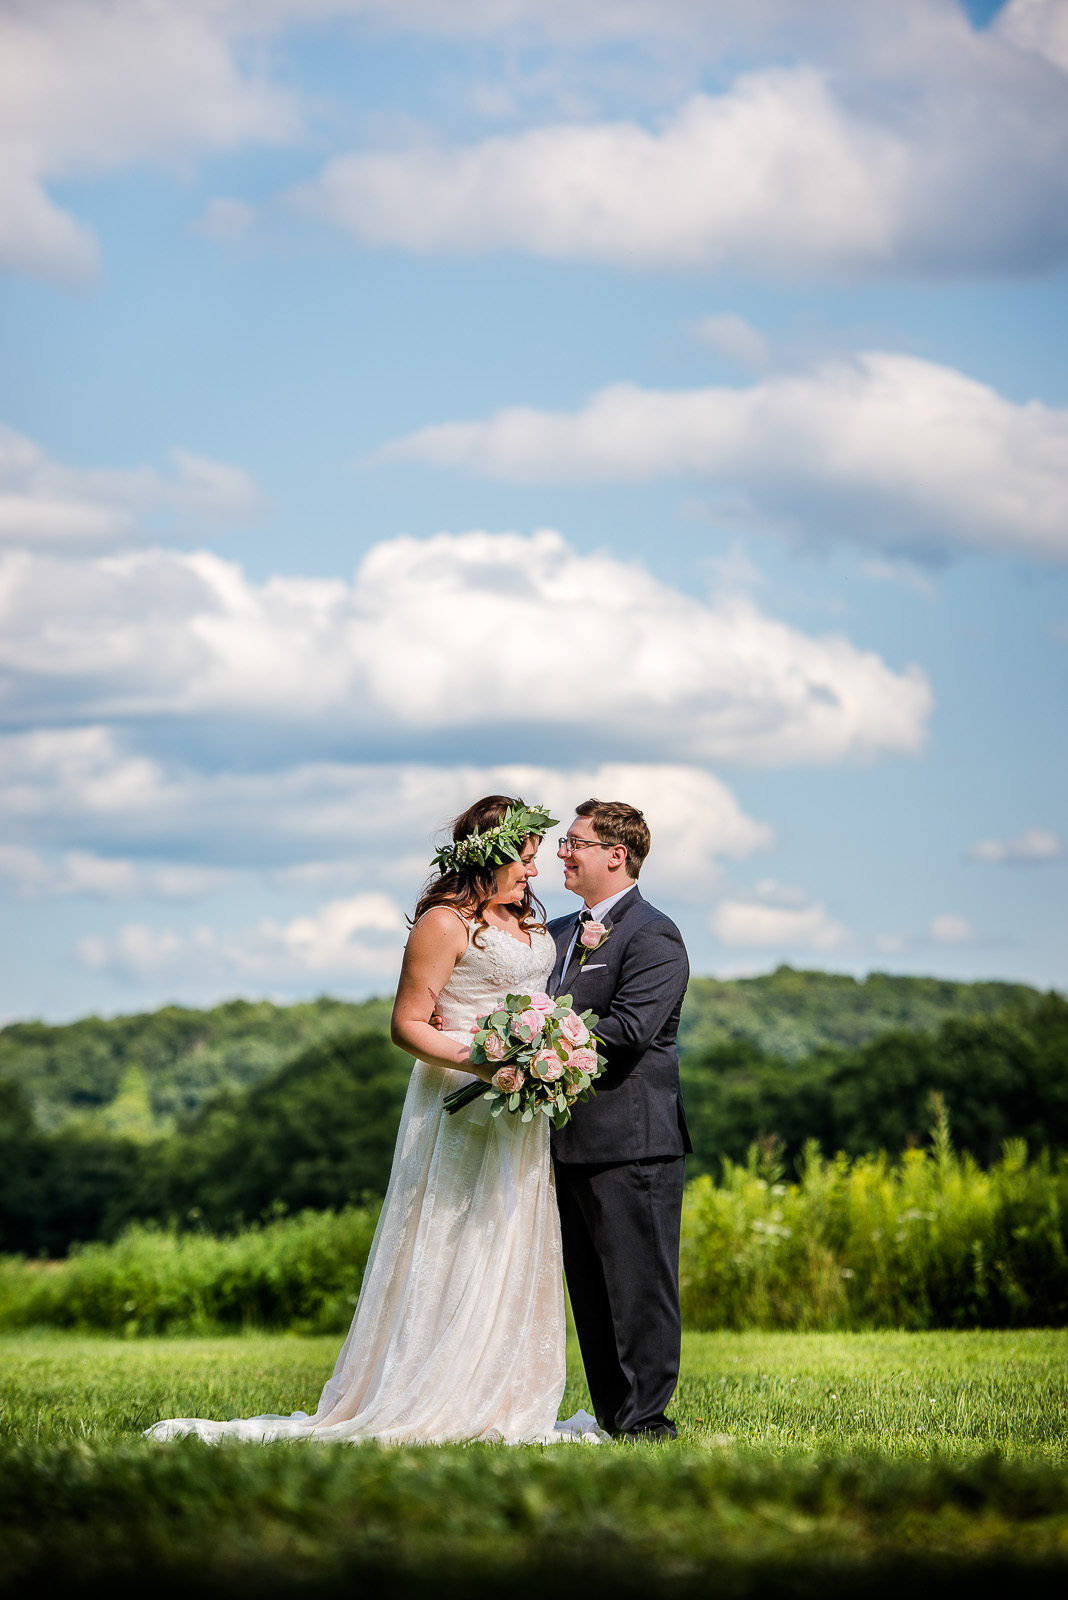 Eric_and_Christy_Photography_Blog_2018_Portraits-35